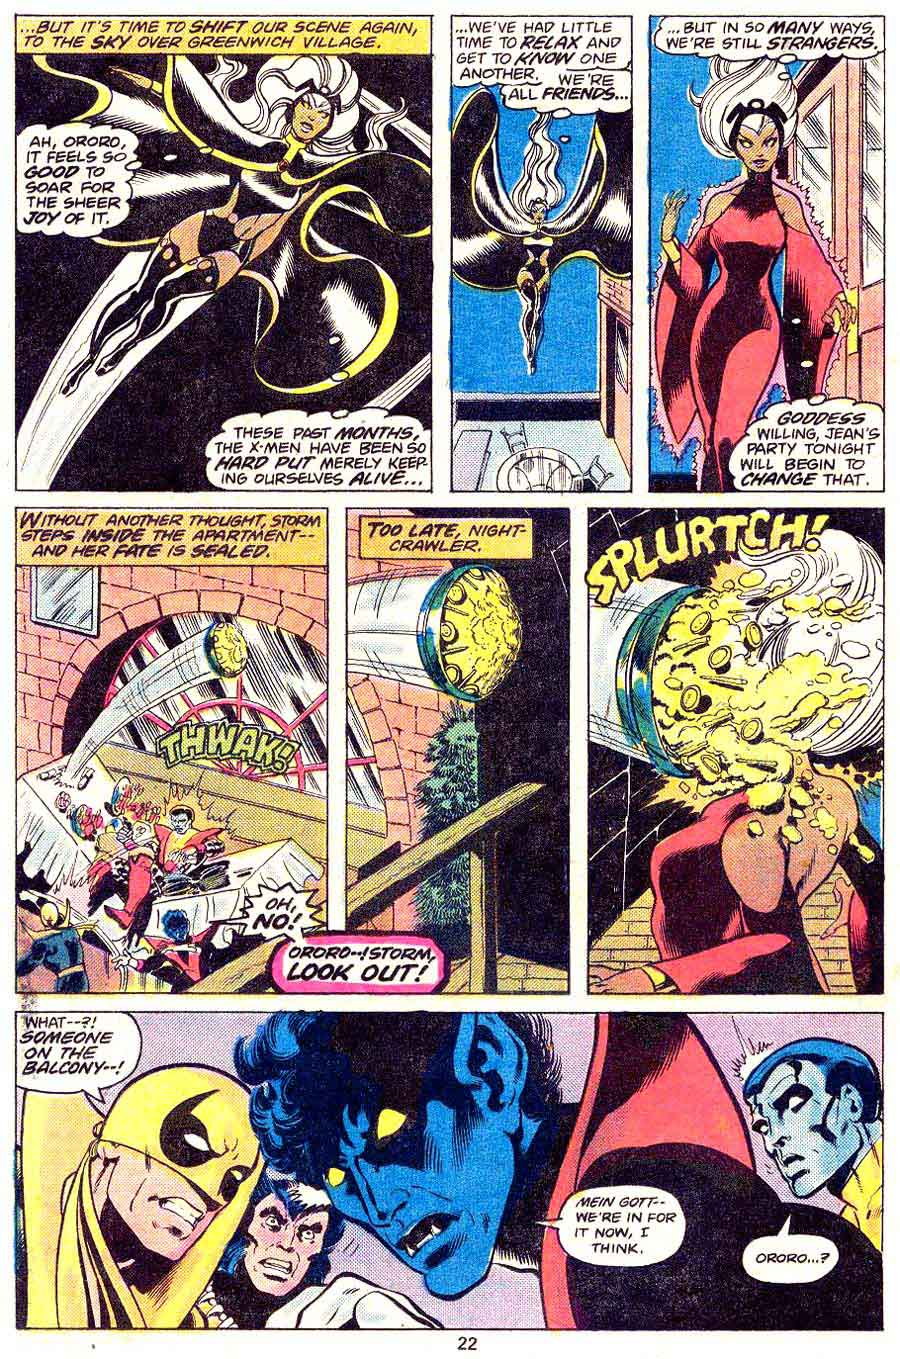 Iron Fist v1 #15 x-men bronze age marvel comic book page art by John Byrne